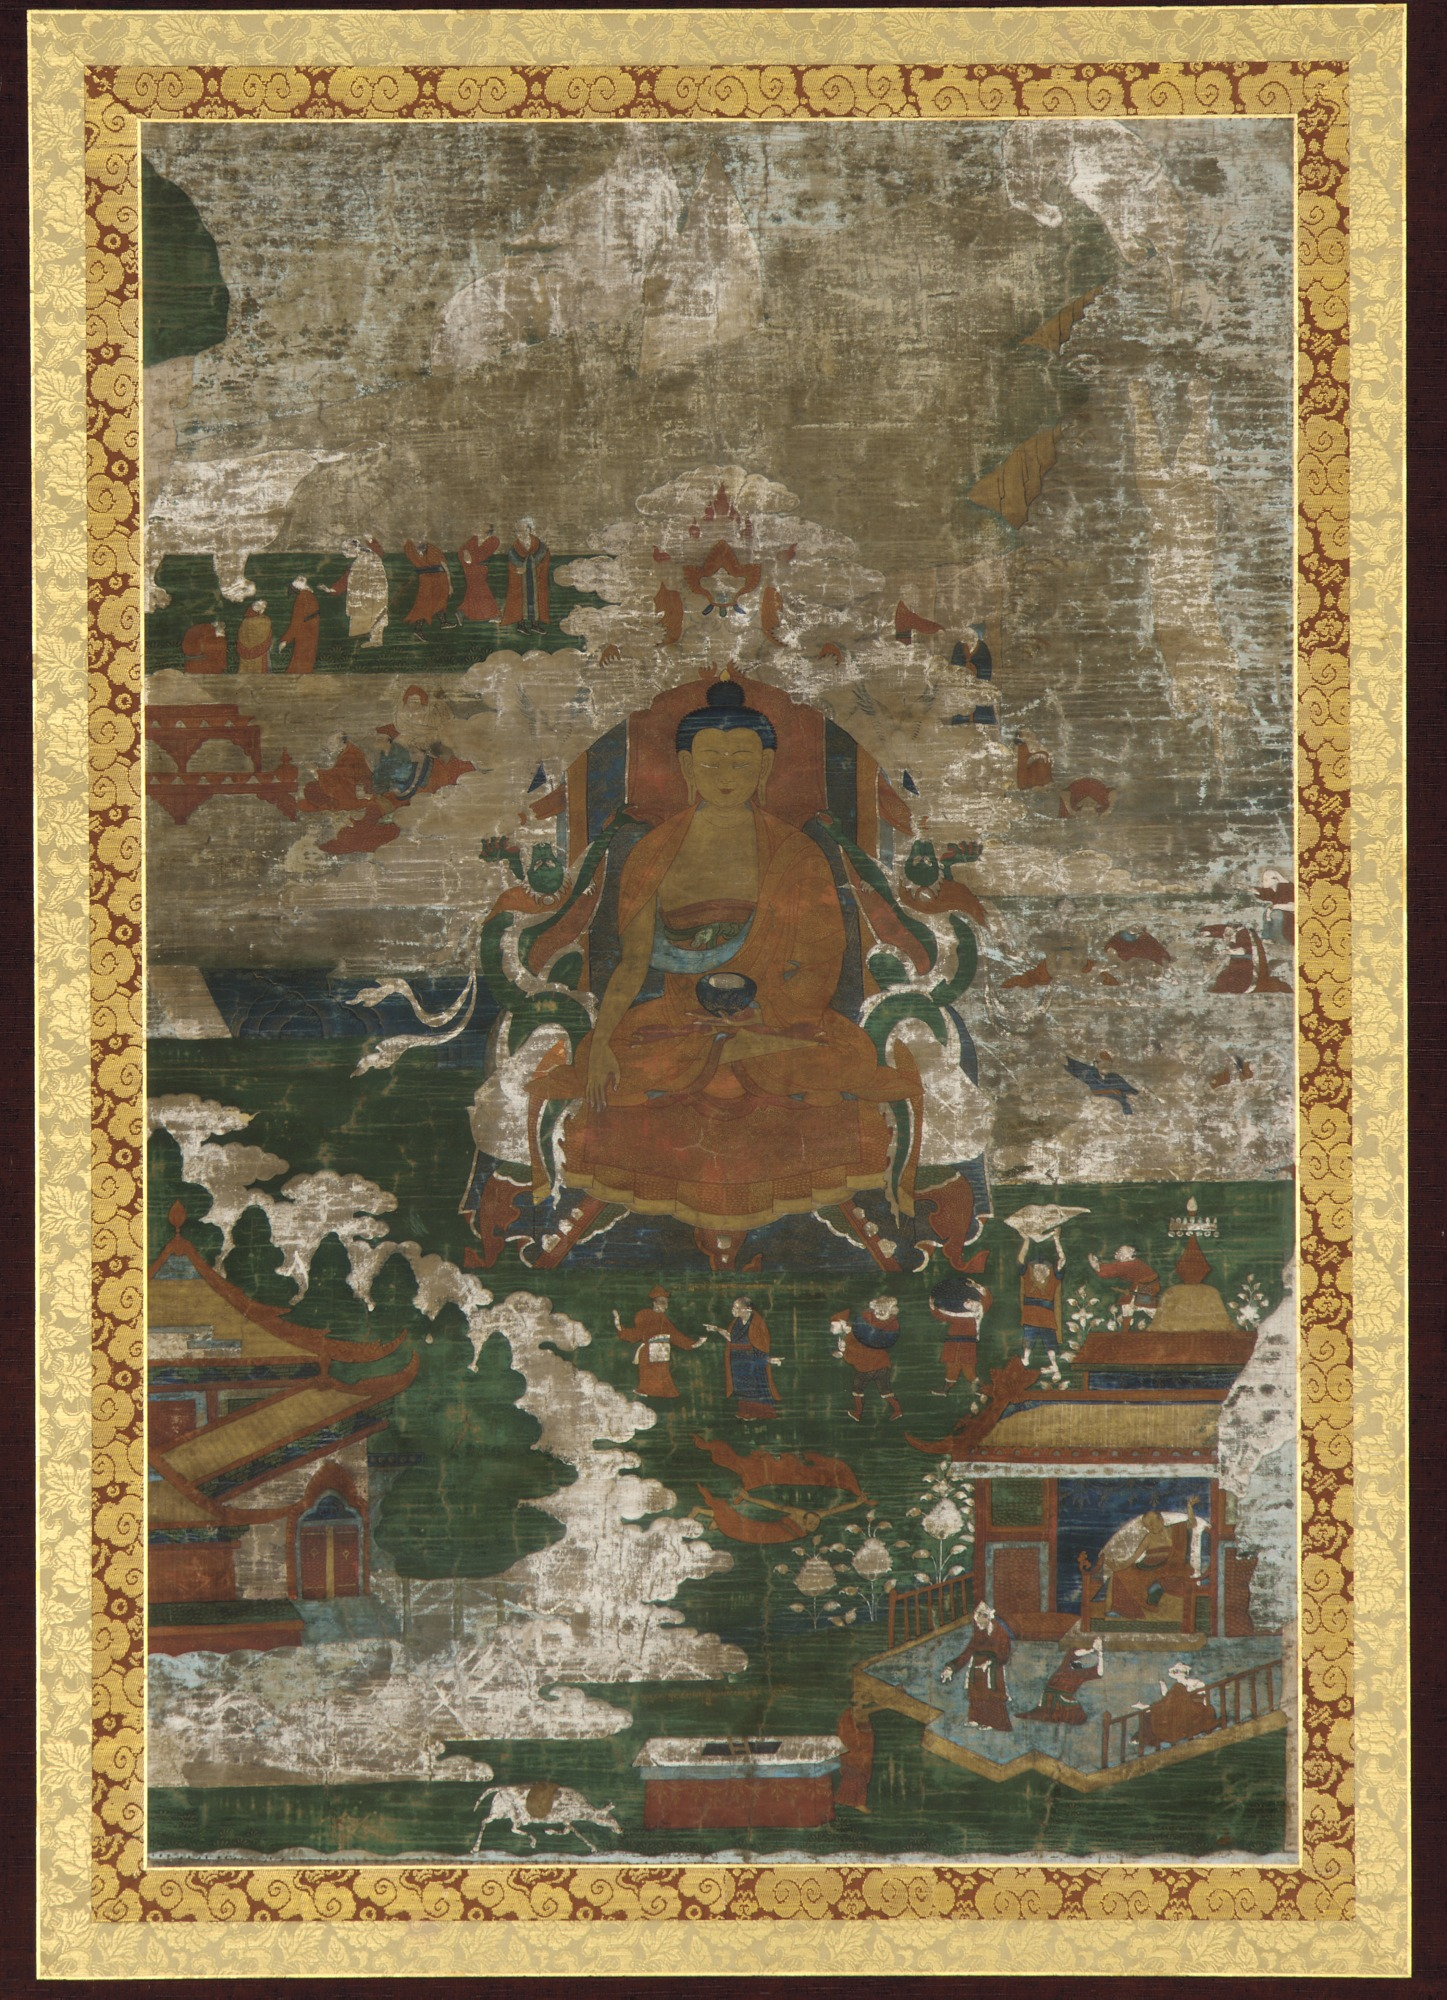 Sakyamuni enthroned; and biographical scenes